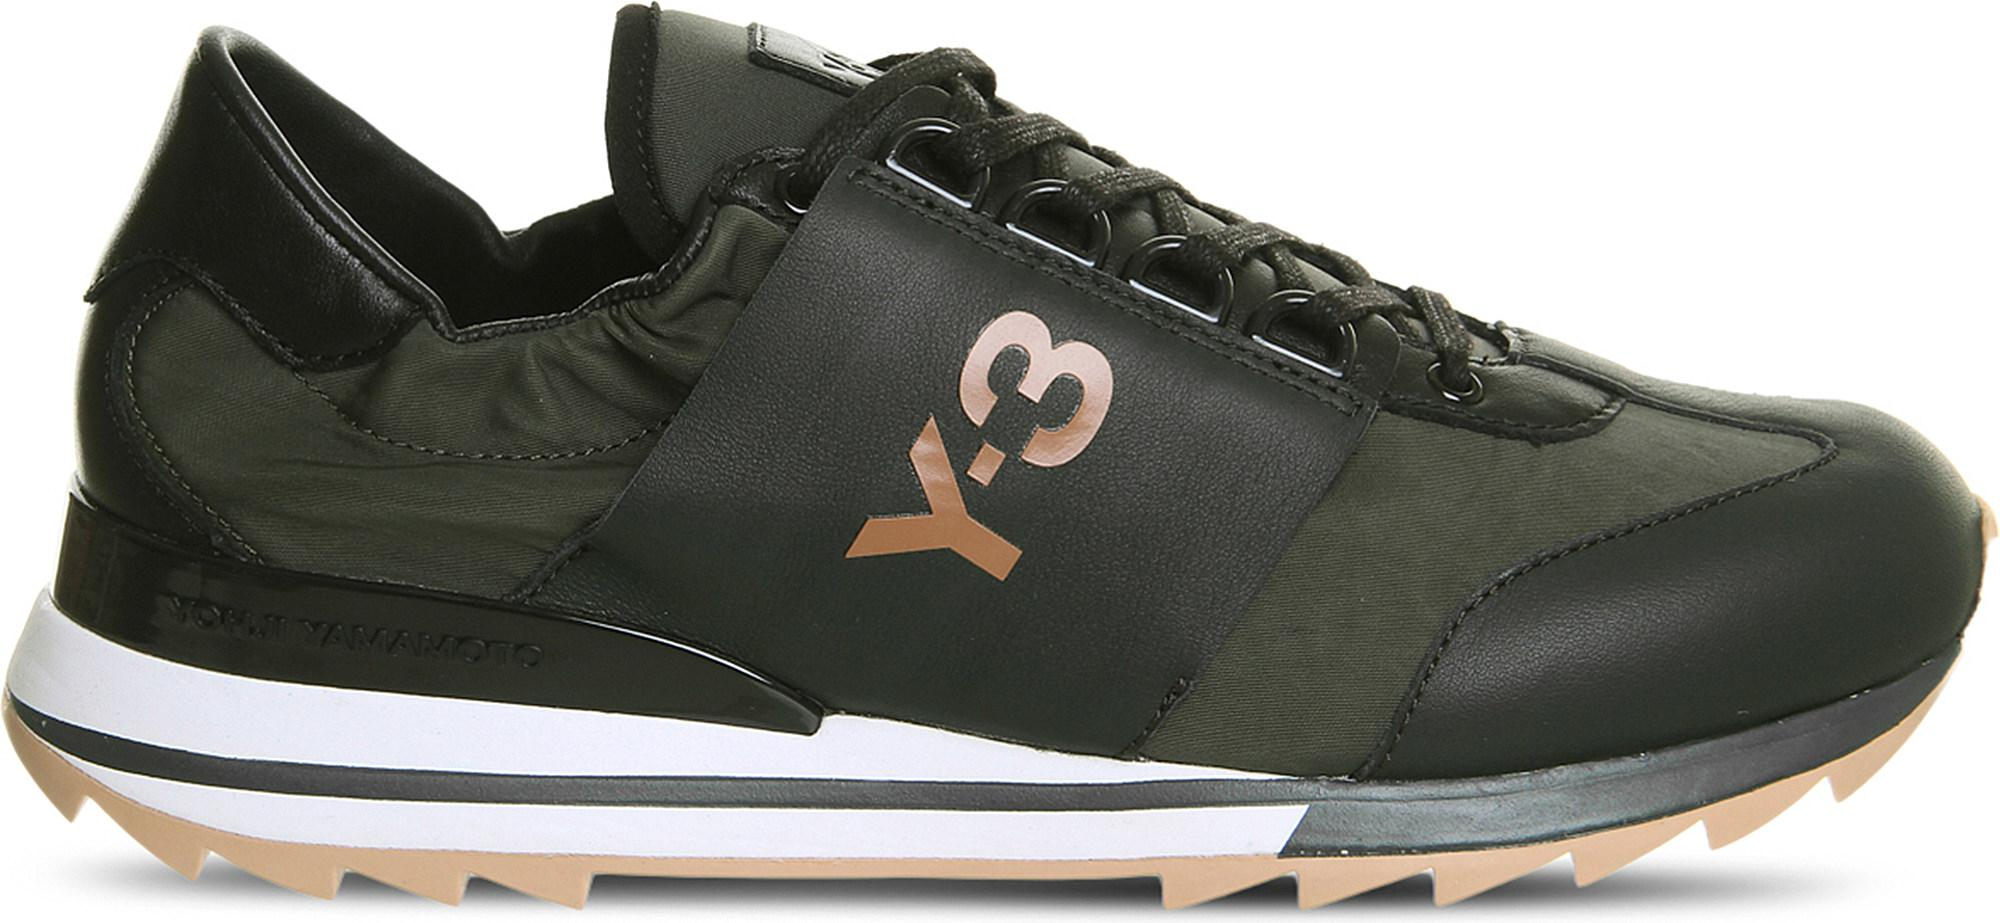 d5de8dbb7277 Y-3 Rhita Sport Leather And Mesh Trainers in Black for Men - Lyst